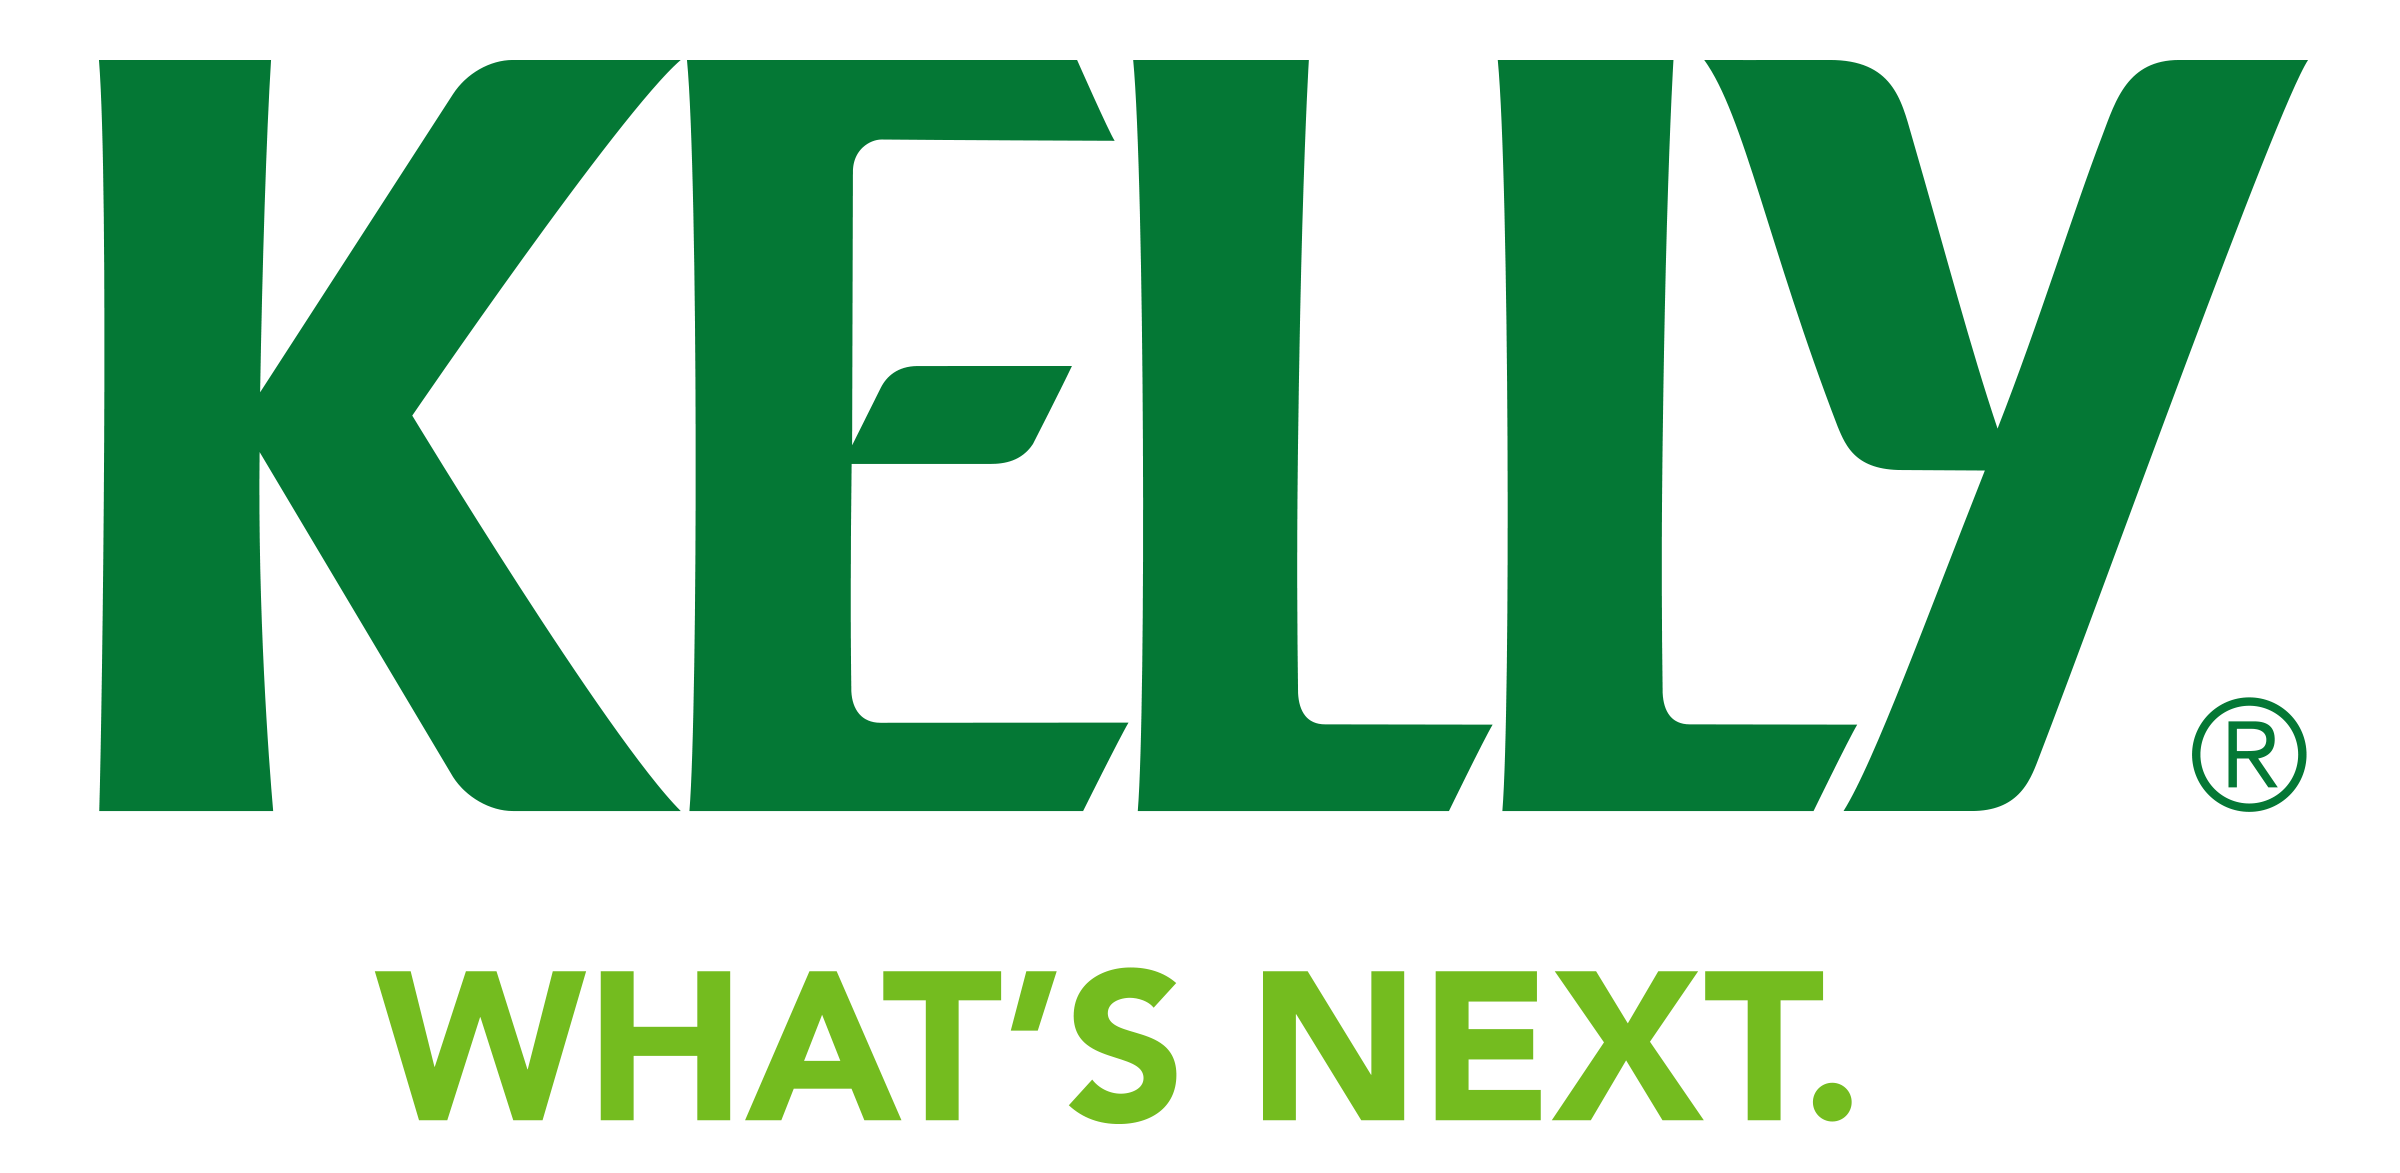 Watch the job video below to learn more about the career opening Video Not Found at Kelly Services in